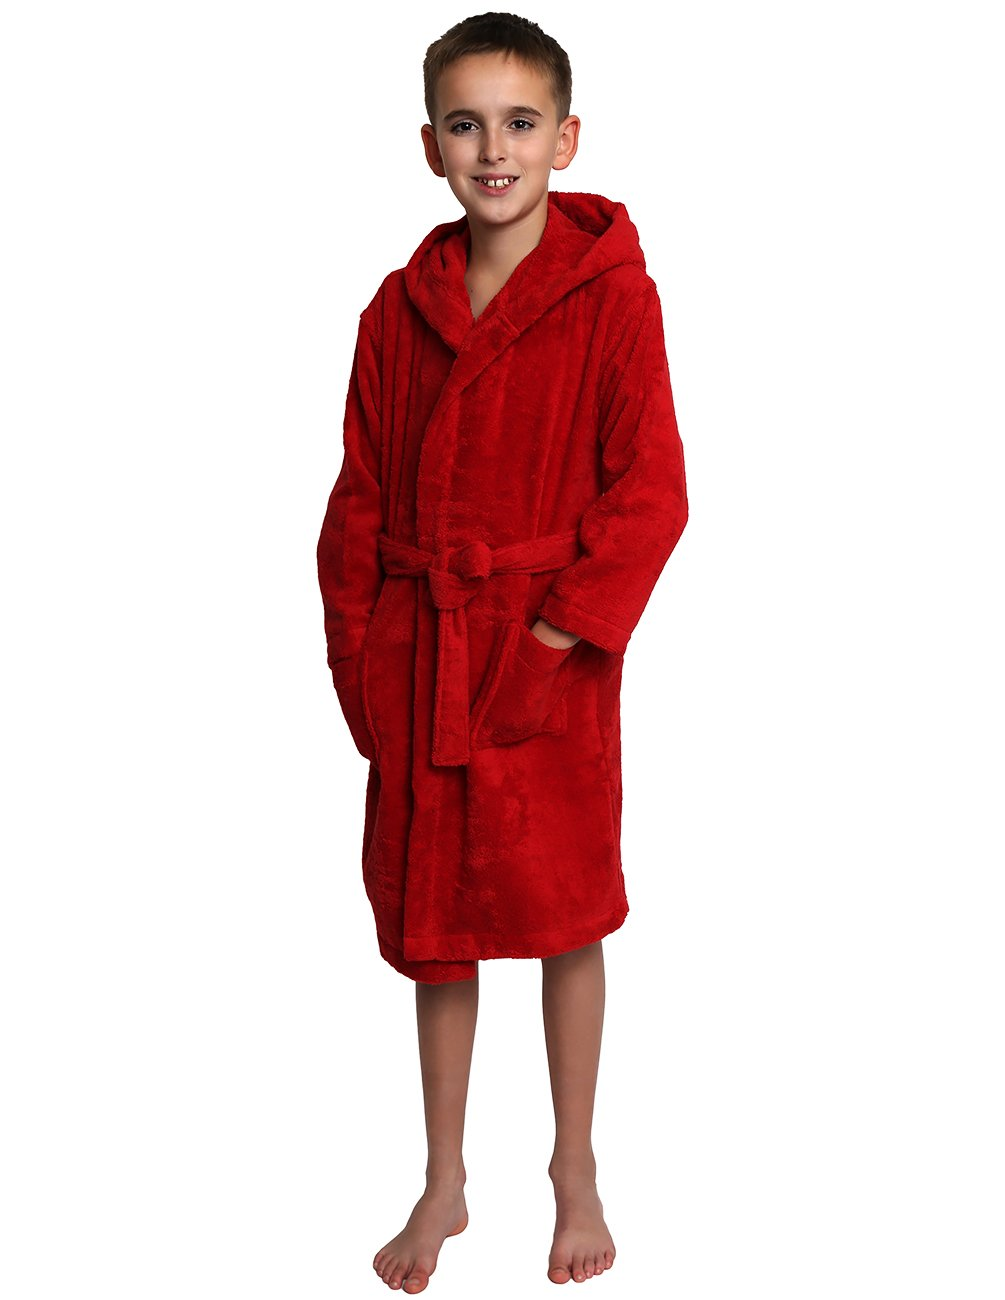 TowelSelections Big Girls Robe, Kids Hooded Cotton Terry Bathrobe Cover-up Size 10 Red